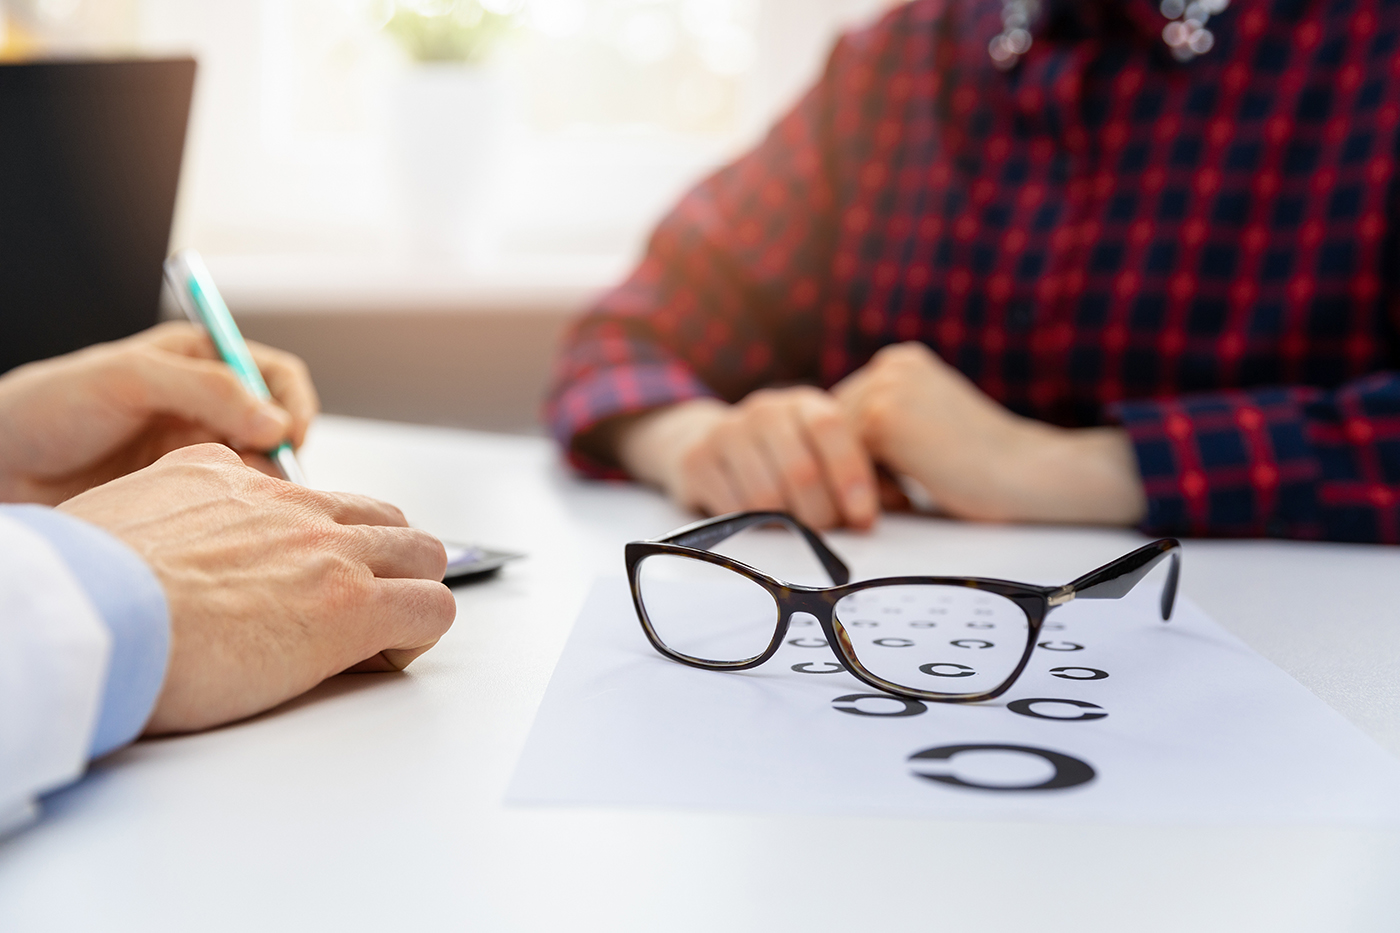 doctor patient interaction with glasses on table